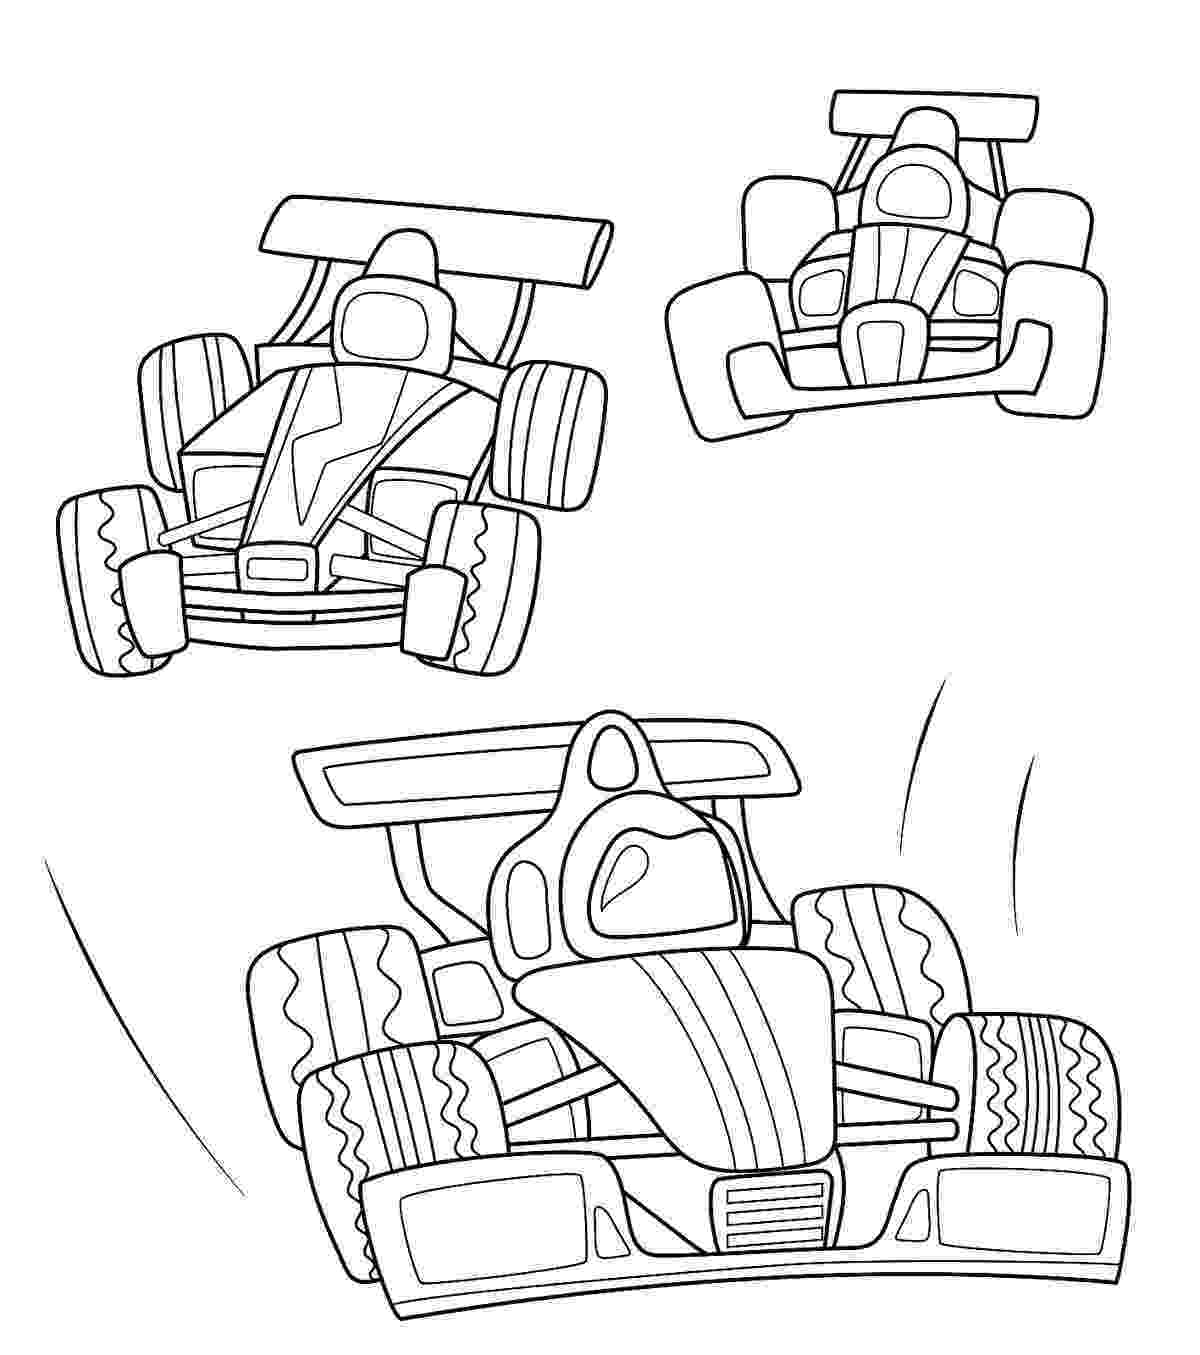 coloring pages of cars and trucks moving vehicle coloring pages 10 fun cars trucks trains trucks and coloring cars of pages